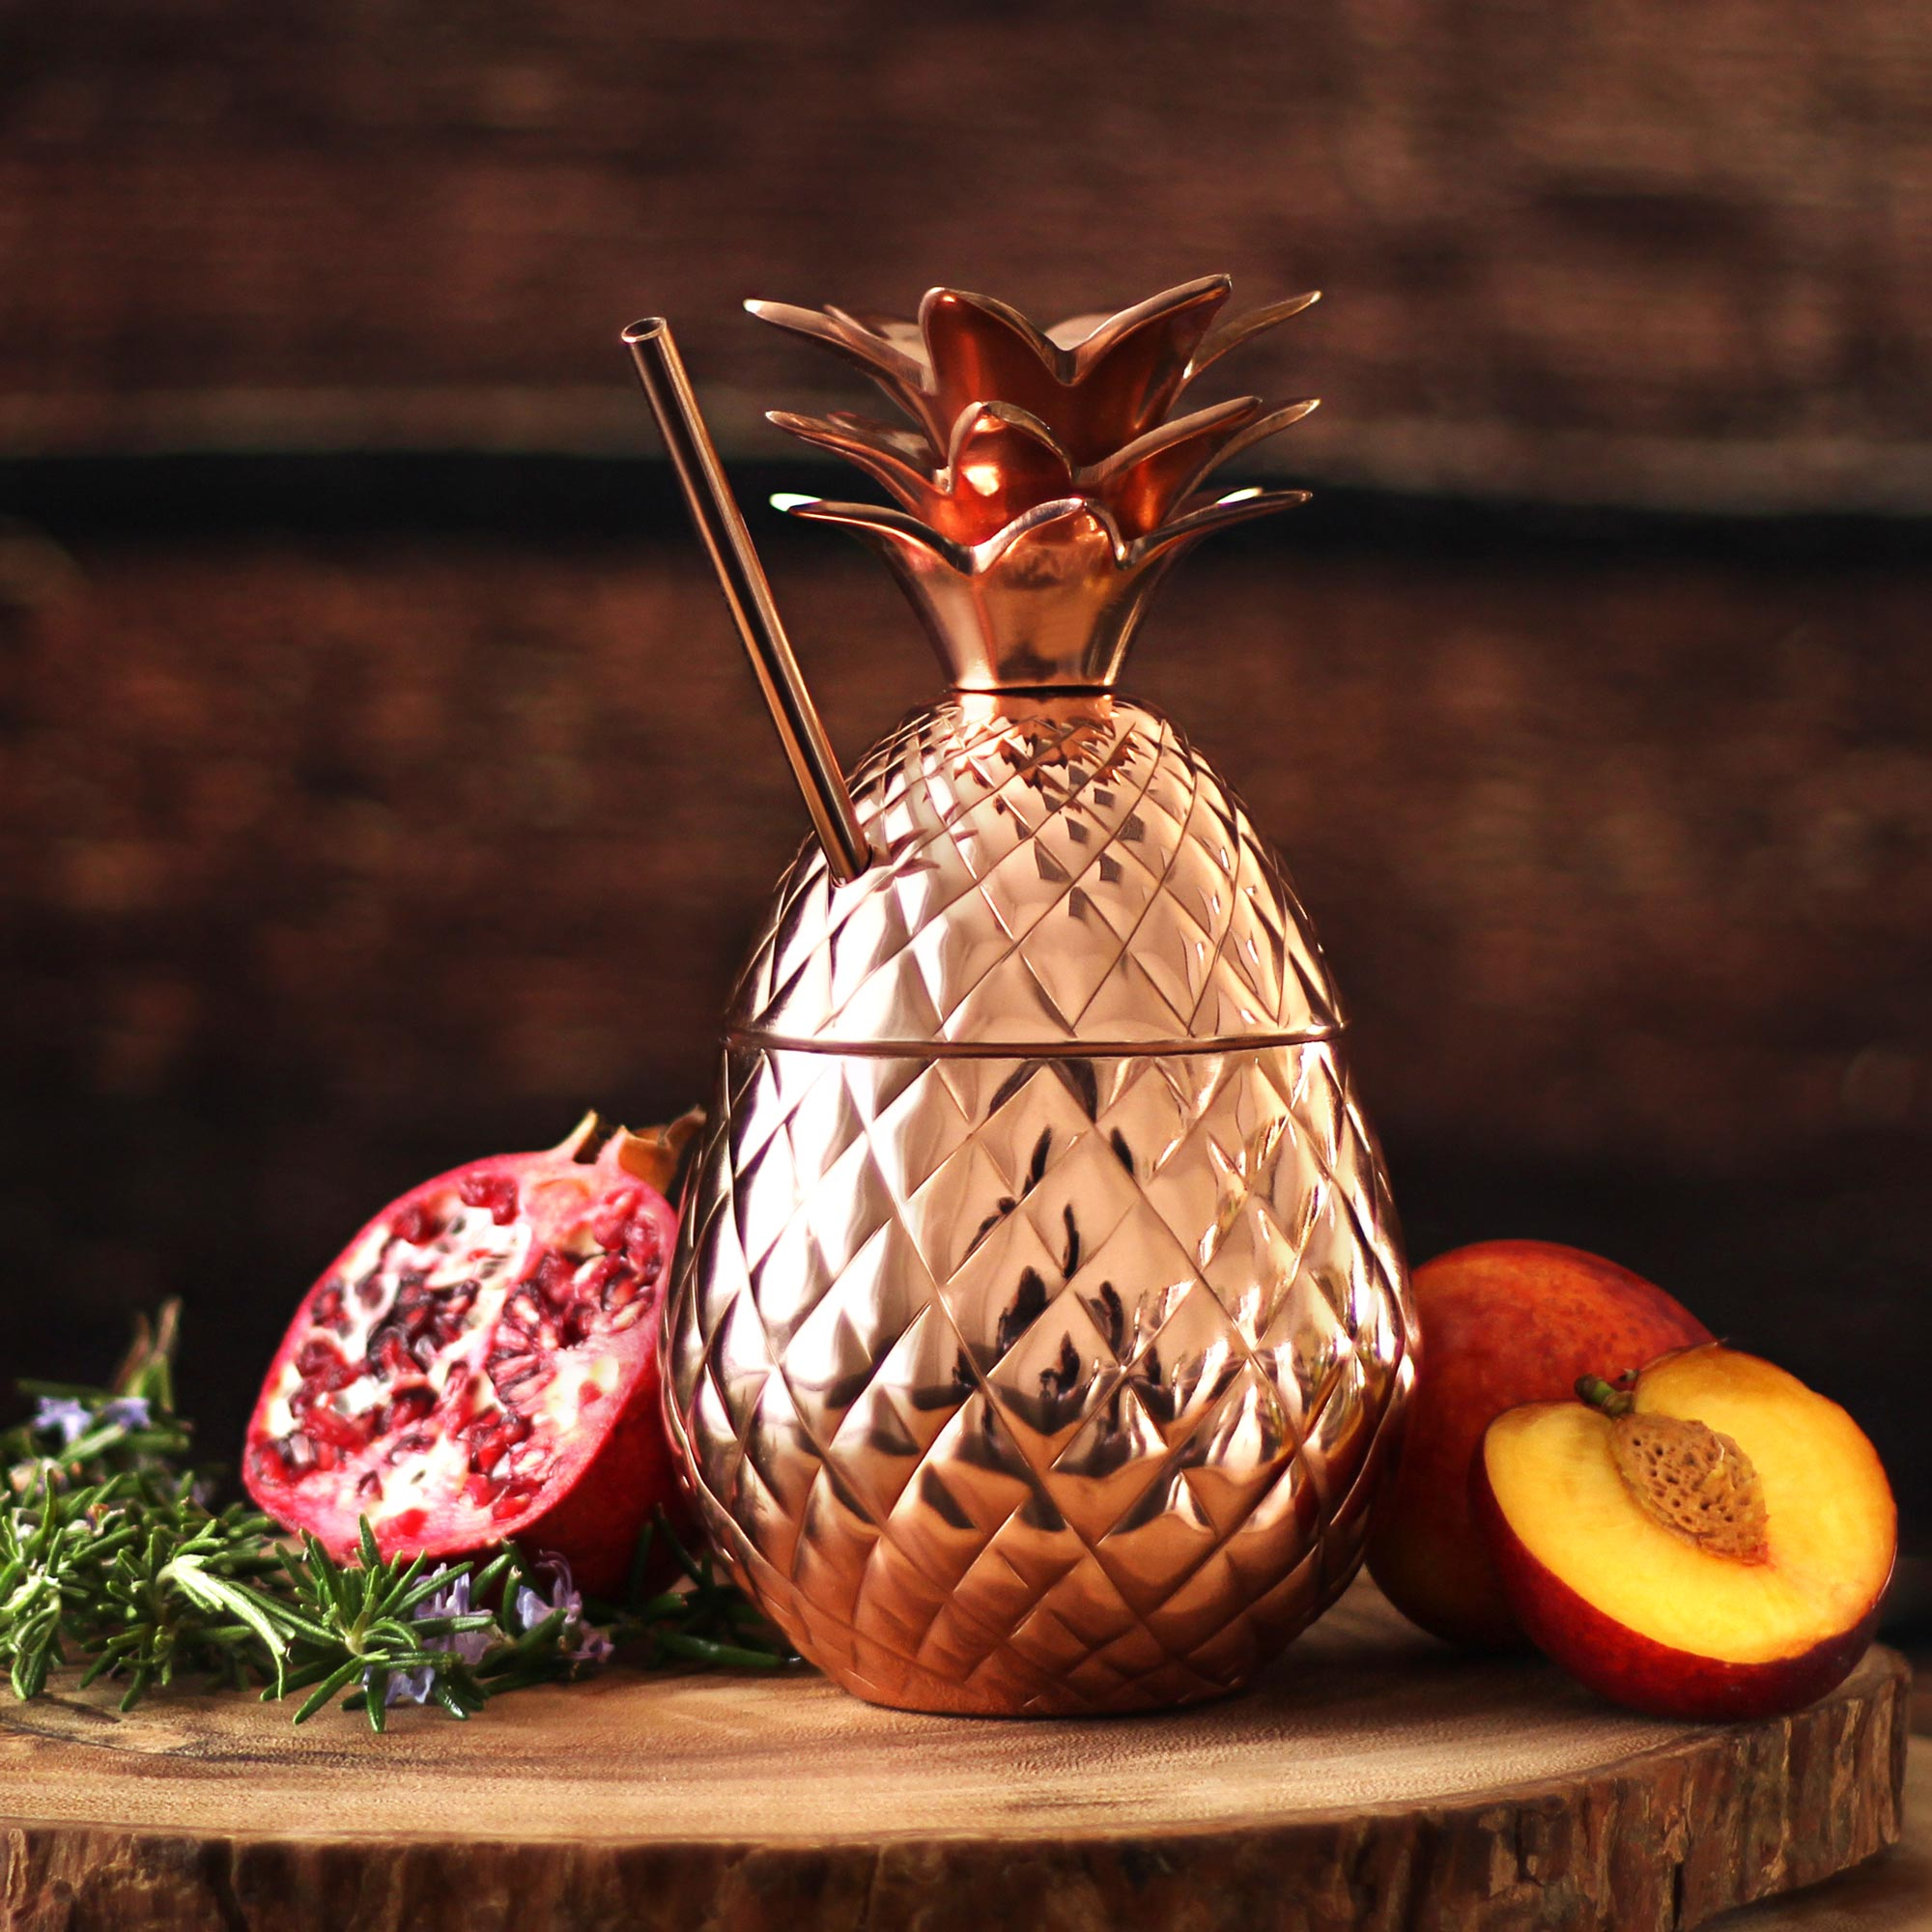 kitchen stuff for sale best damascus knives copper pineapple cup with straw 18.5oz / 525ml | drinkstuff